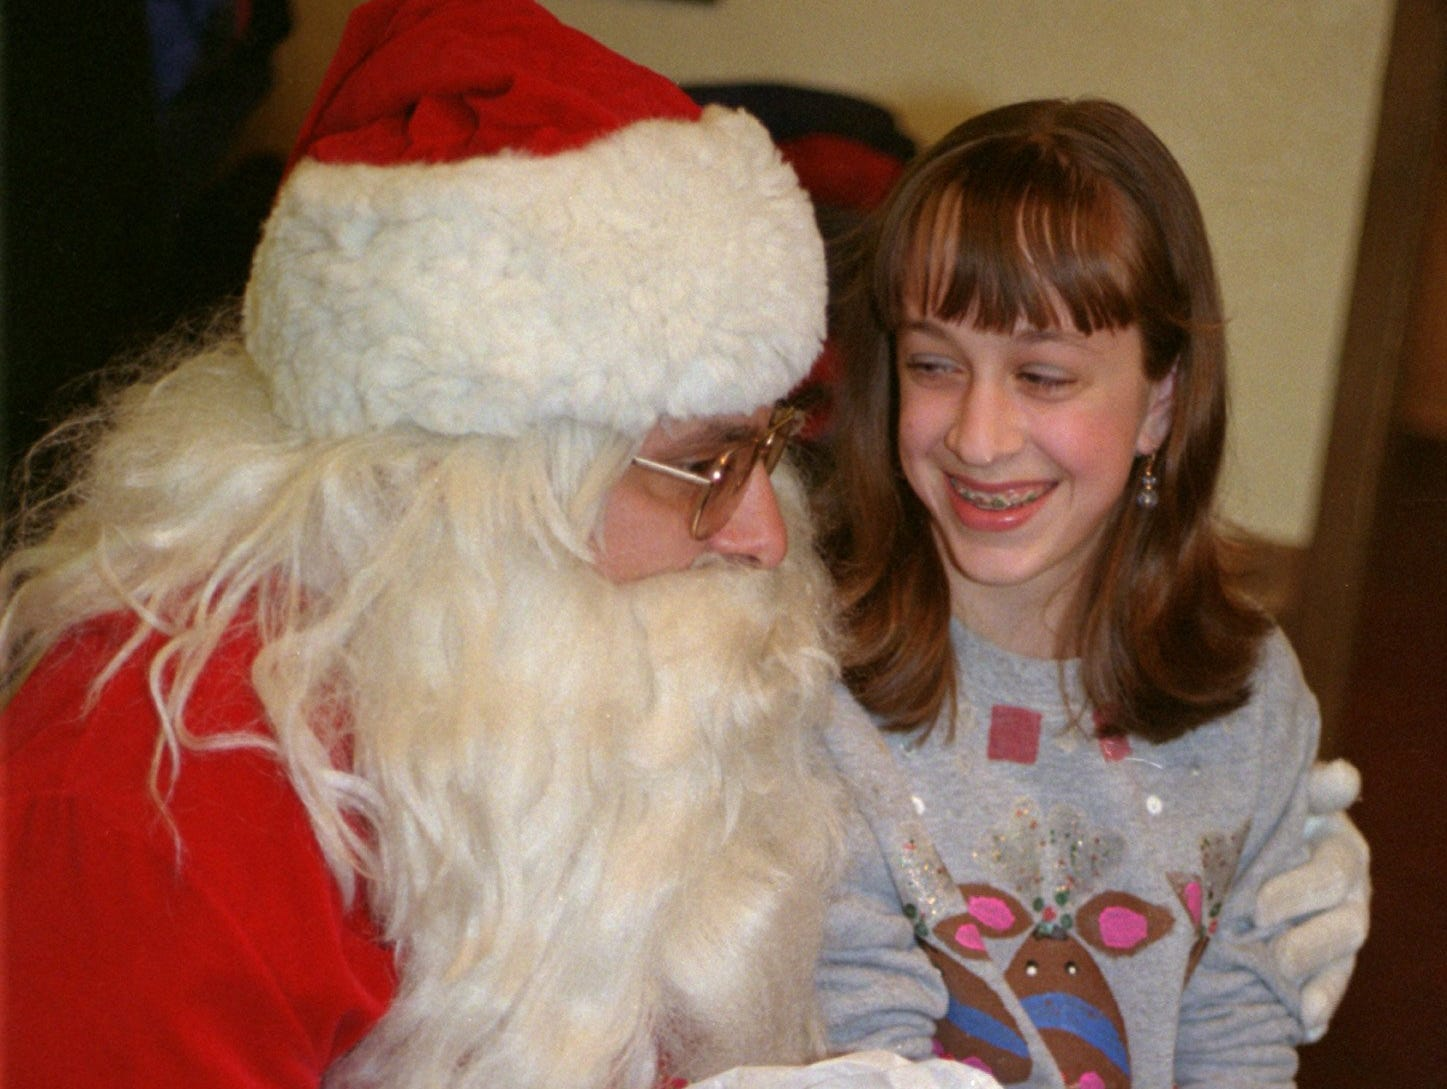 12/24/99; 2C:  Fourteen year old Amy Trosino got an early gift from Santa at a recent Christmas party for children with cancer at Hoss's in elmira. Amy lost her brother to cancer three years ago.